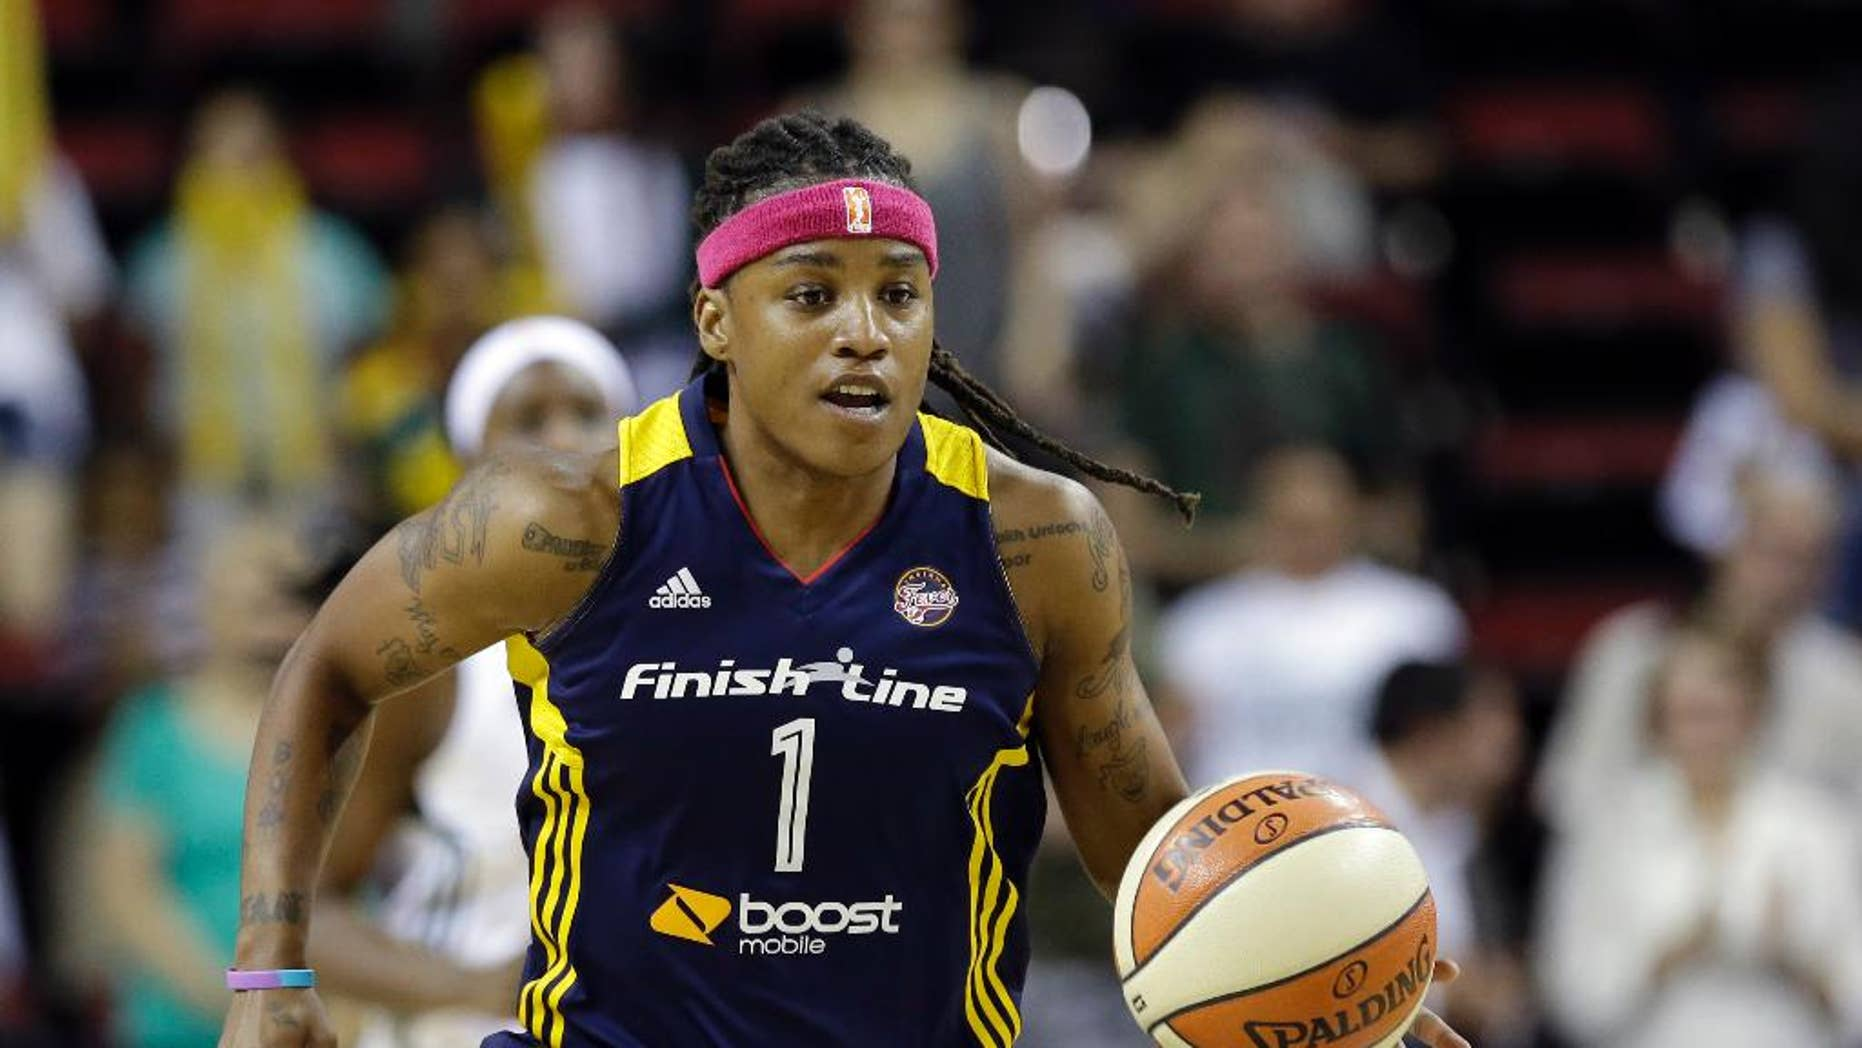 FILE - In this July 31, 2014, file photo, Indiana Fever's Shavonte Zellous moves the ball against the Seattle Storm during a WNBA basketball game in Seattle. After one of the most successful seasons in her career, leading Turkish power Galatasary to championships in both the domestic league and Euroleague, Zellous is now embroiled in a salary dispute. The club's former president promised Zellous and her teammates that their bonuses would be doubled after Galatasary beat rival Fenerbahce. They're still waiting for their money.(AP Photo/Elaine Thompson, File)